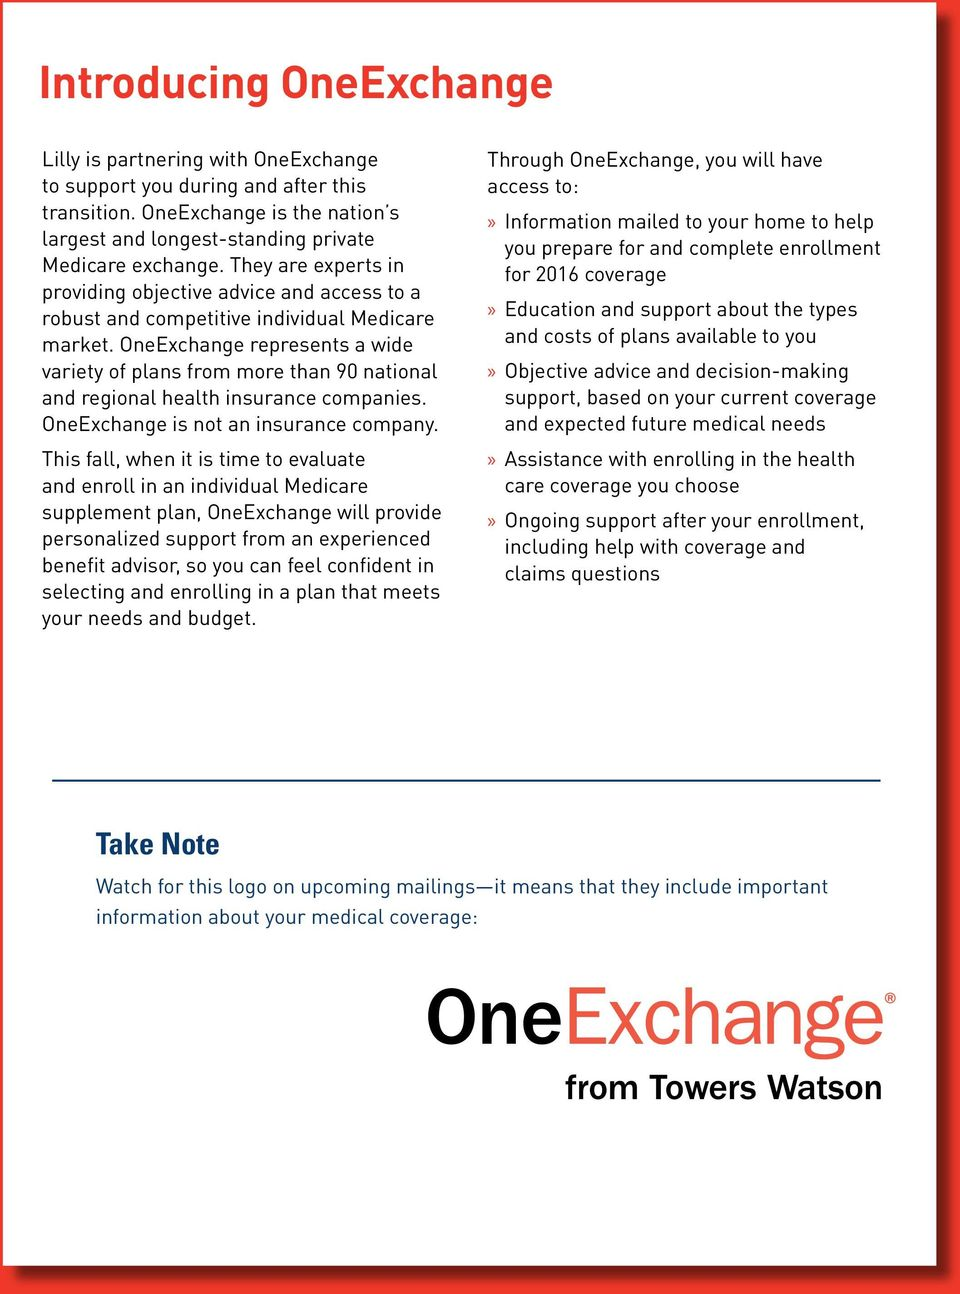 OneExchange represents a wide variety of plans from more than 90 national and regional health insurance companies. OneExchange is not an insurance company.